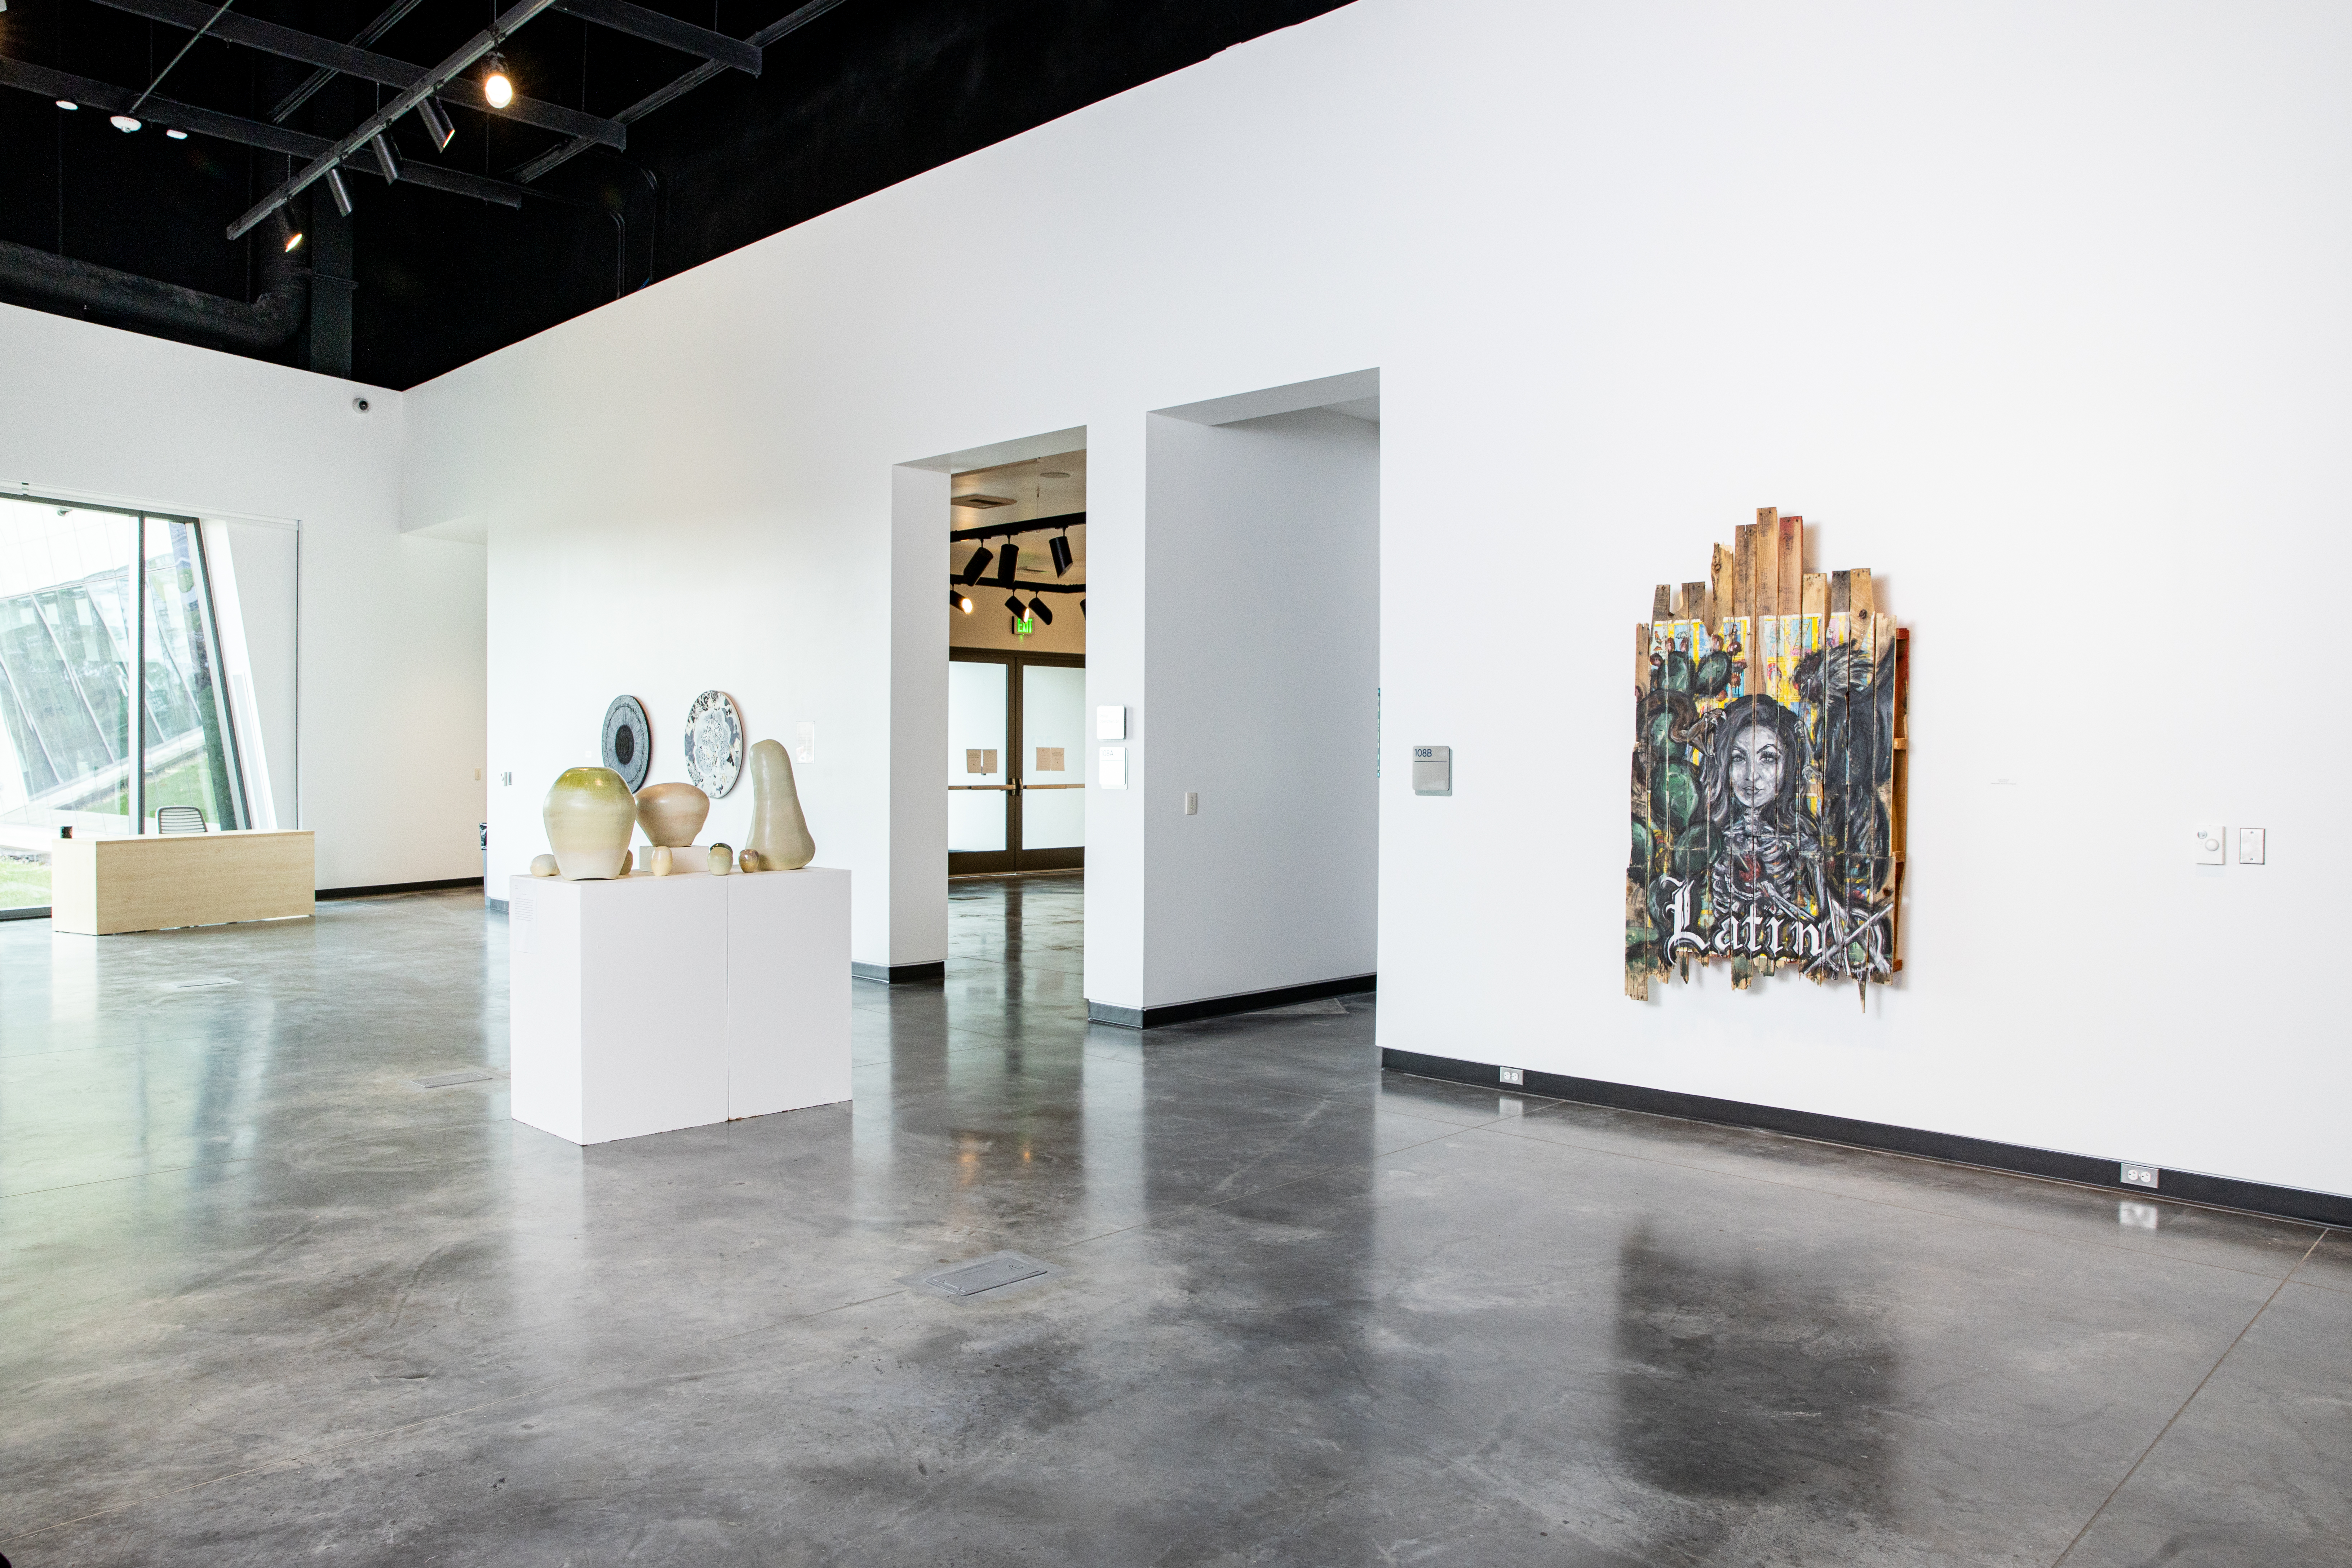 Blue Galleries space with art displayed on walls and pedestals.